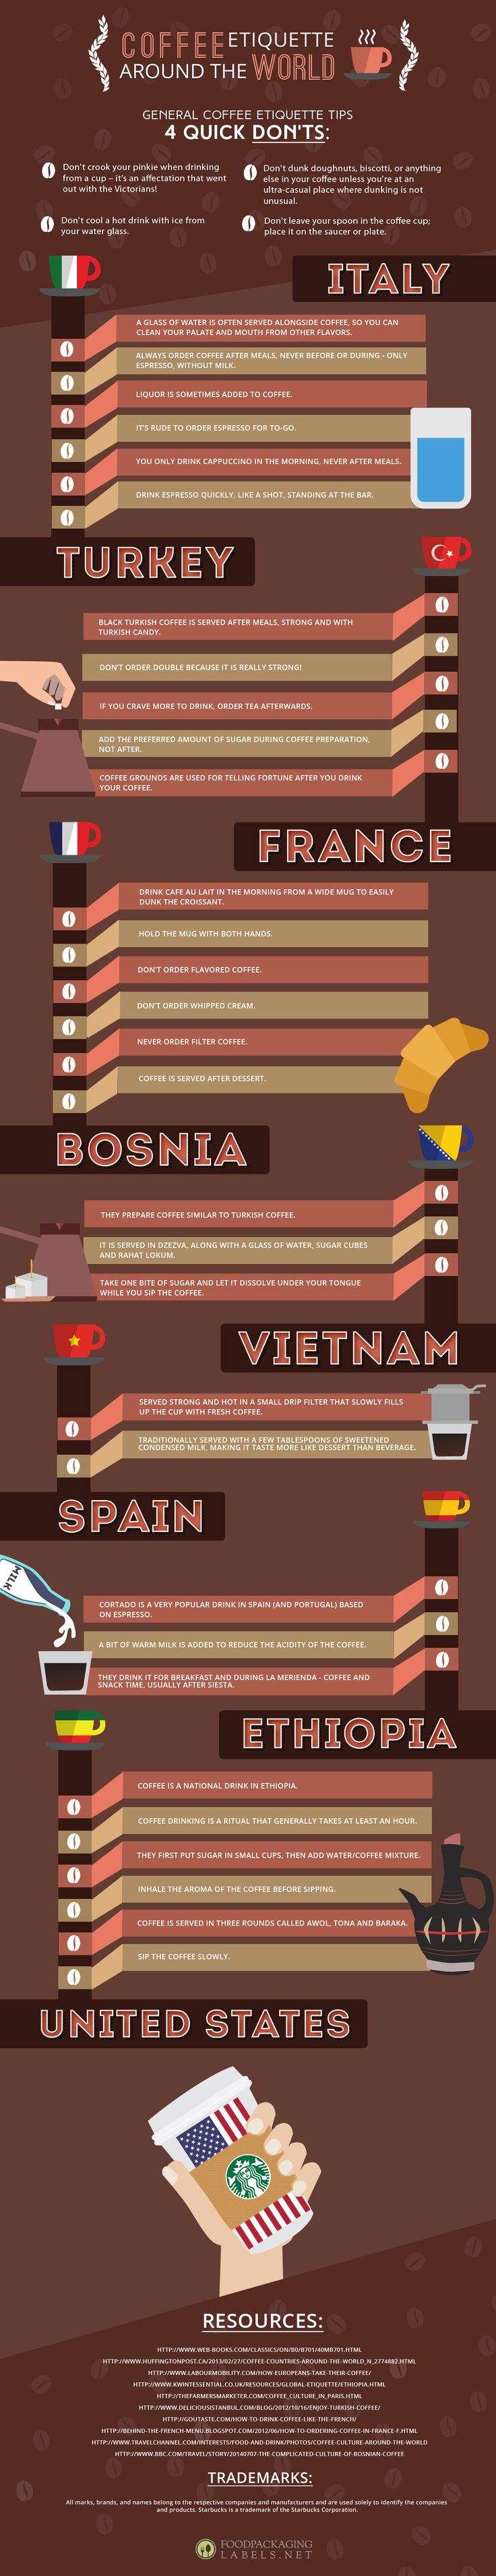 A Quick Guide to Coffee Etiquette Around the World (Infographic) | The Daily Meal